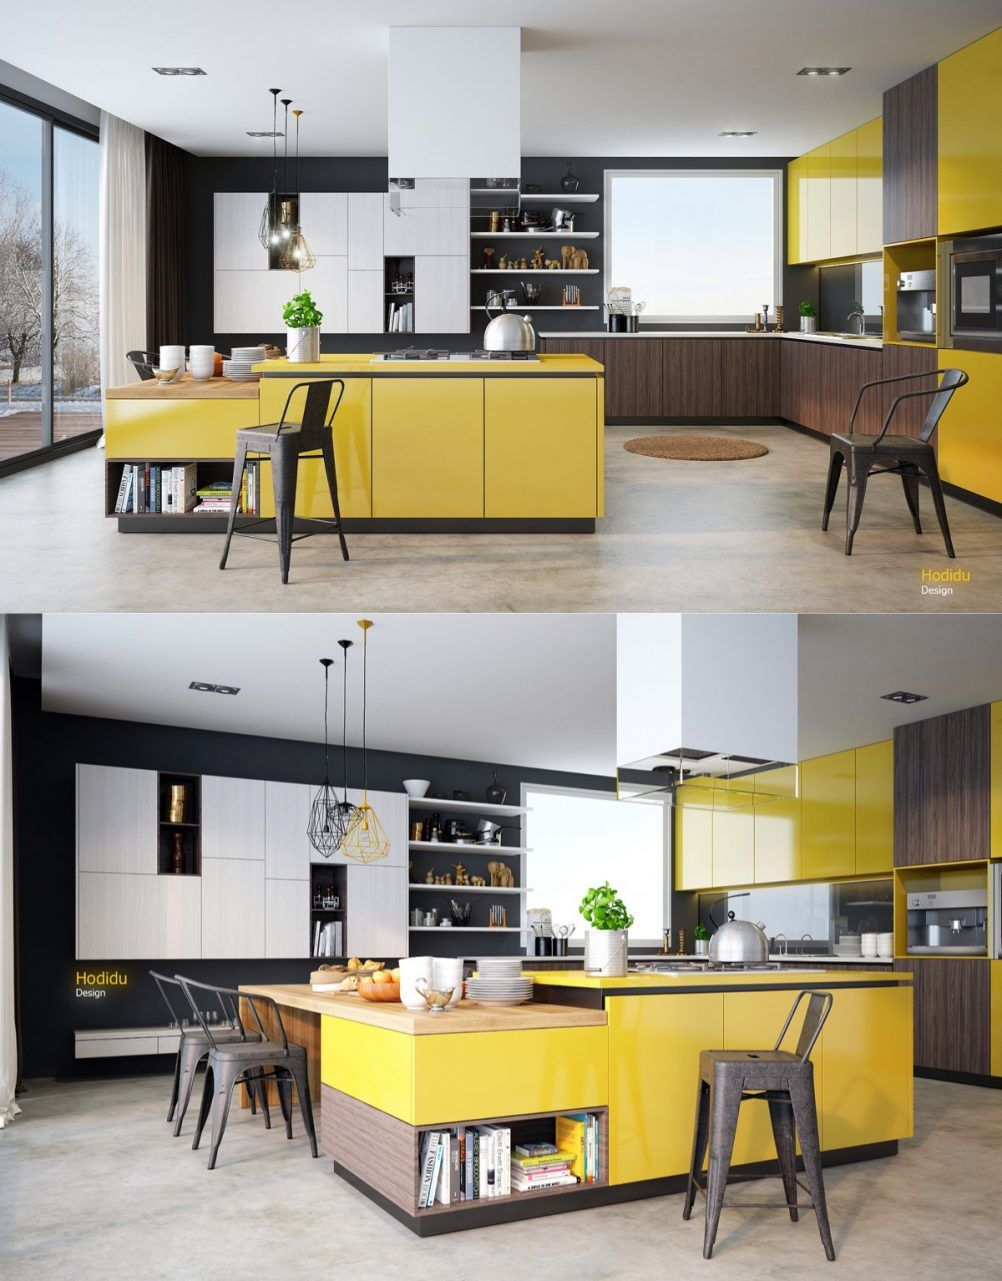 Stylish modern kitchen decor blue and yellow decorating ideas walls with gray cabinets grey accents accessories bright items kitchens new wall brown design